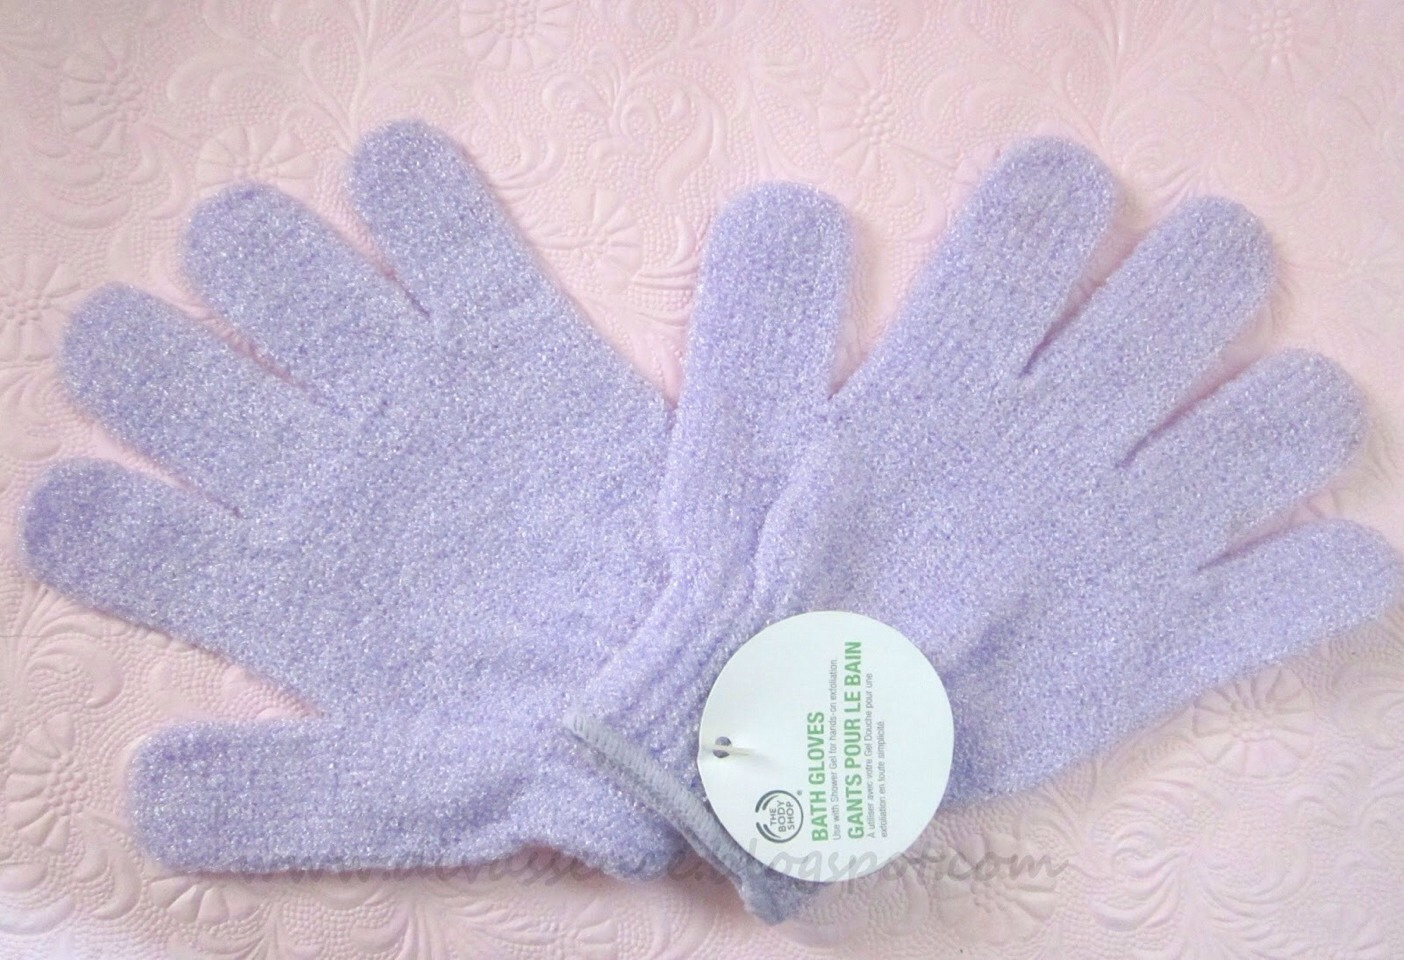 Exfoliation! Whenever you're in the shower make sure that it's fairly hot, this will open your pours. Get hold of some exfoliation gloves and bath salts and gently rub(in circular motion) in the salt using the exfoliation glove. Do this every time you have a shower or bath!